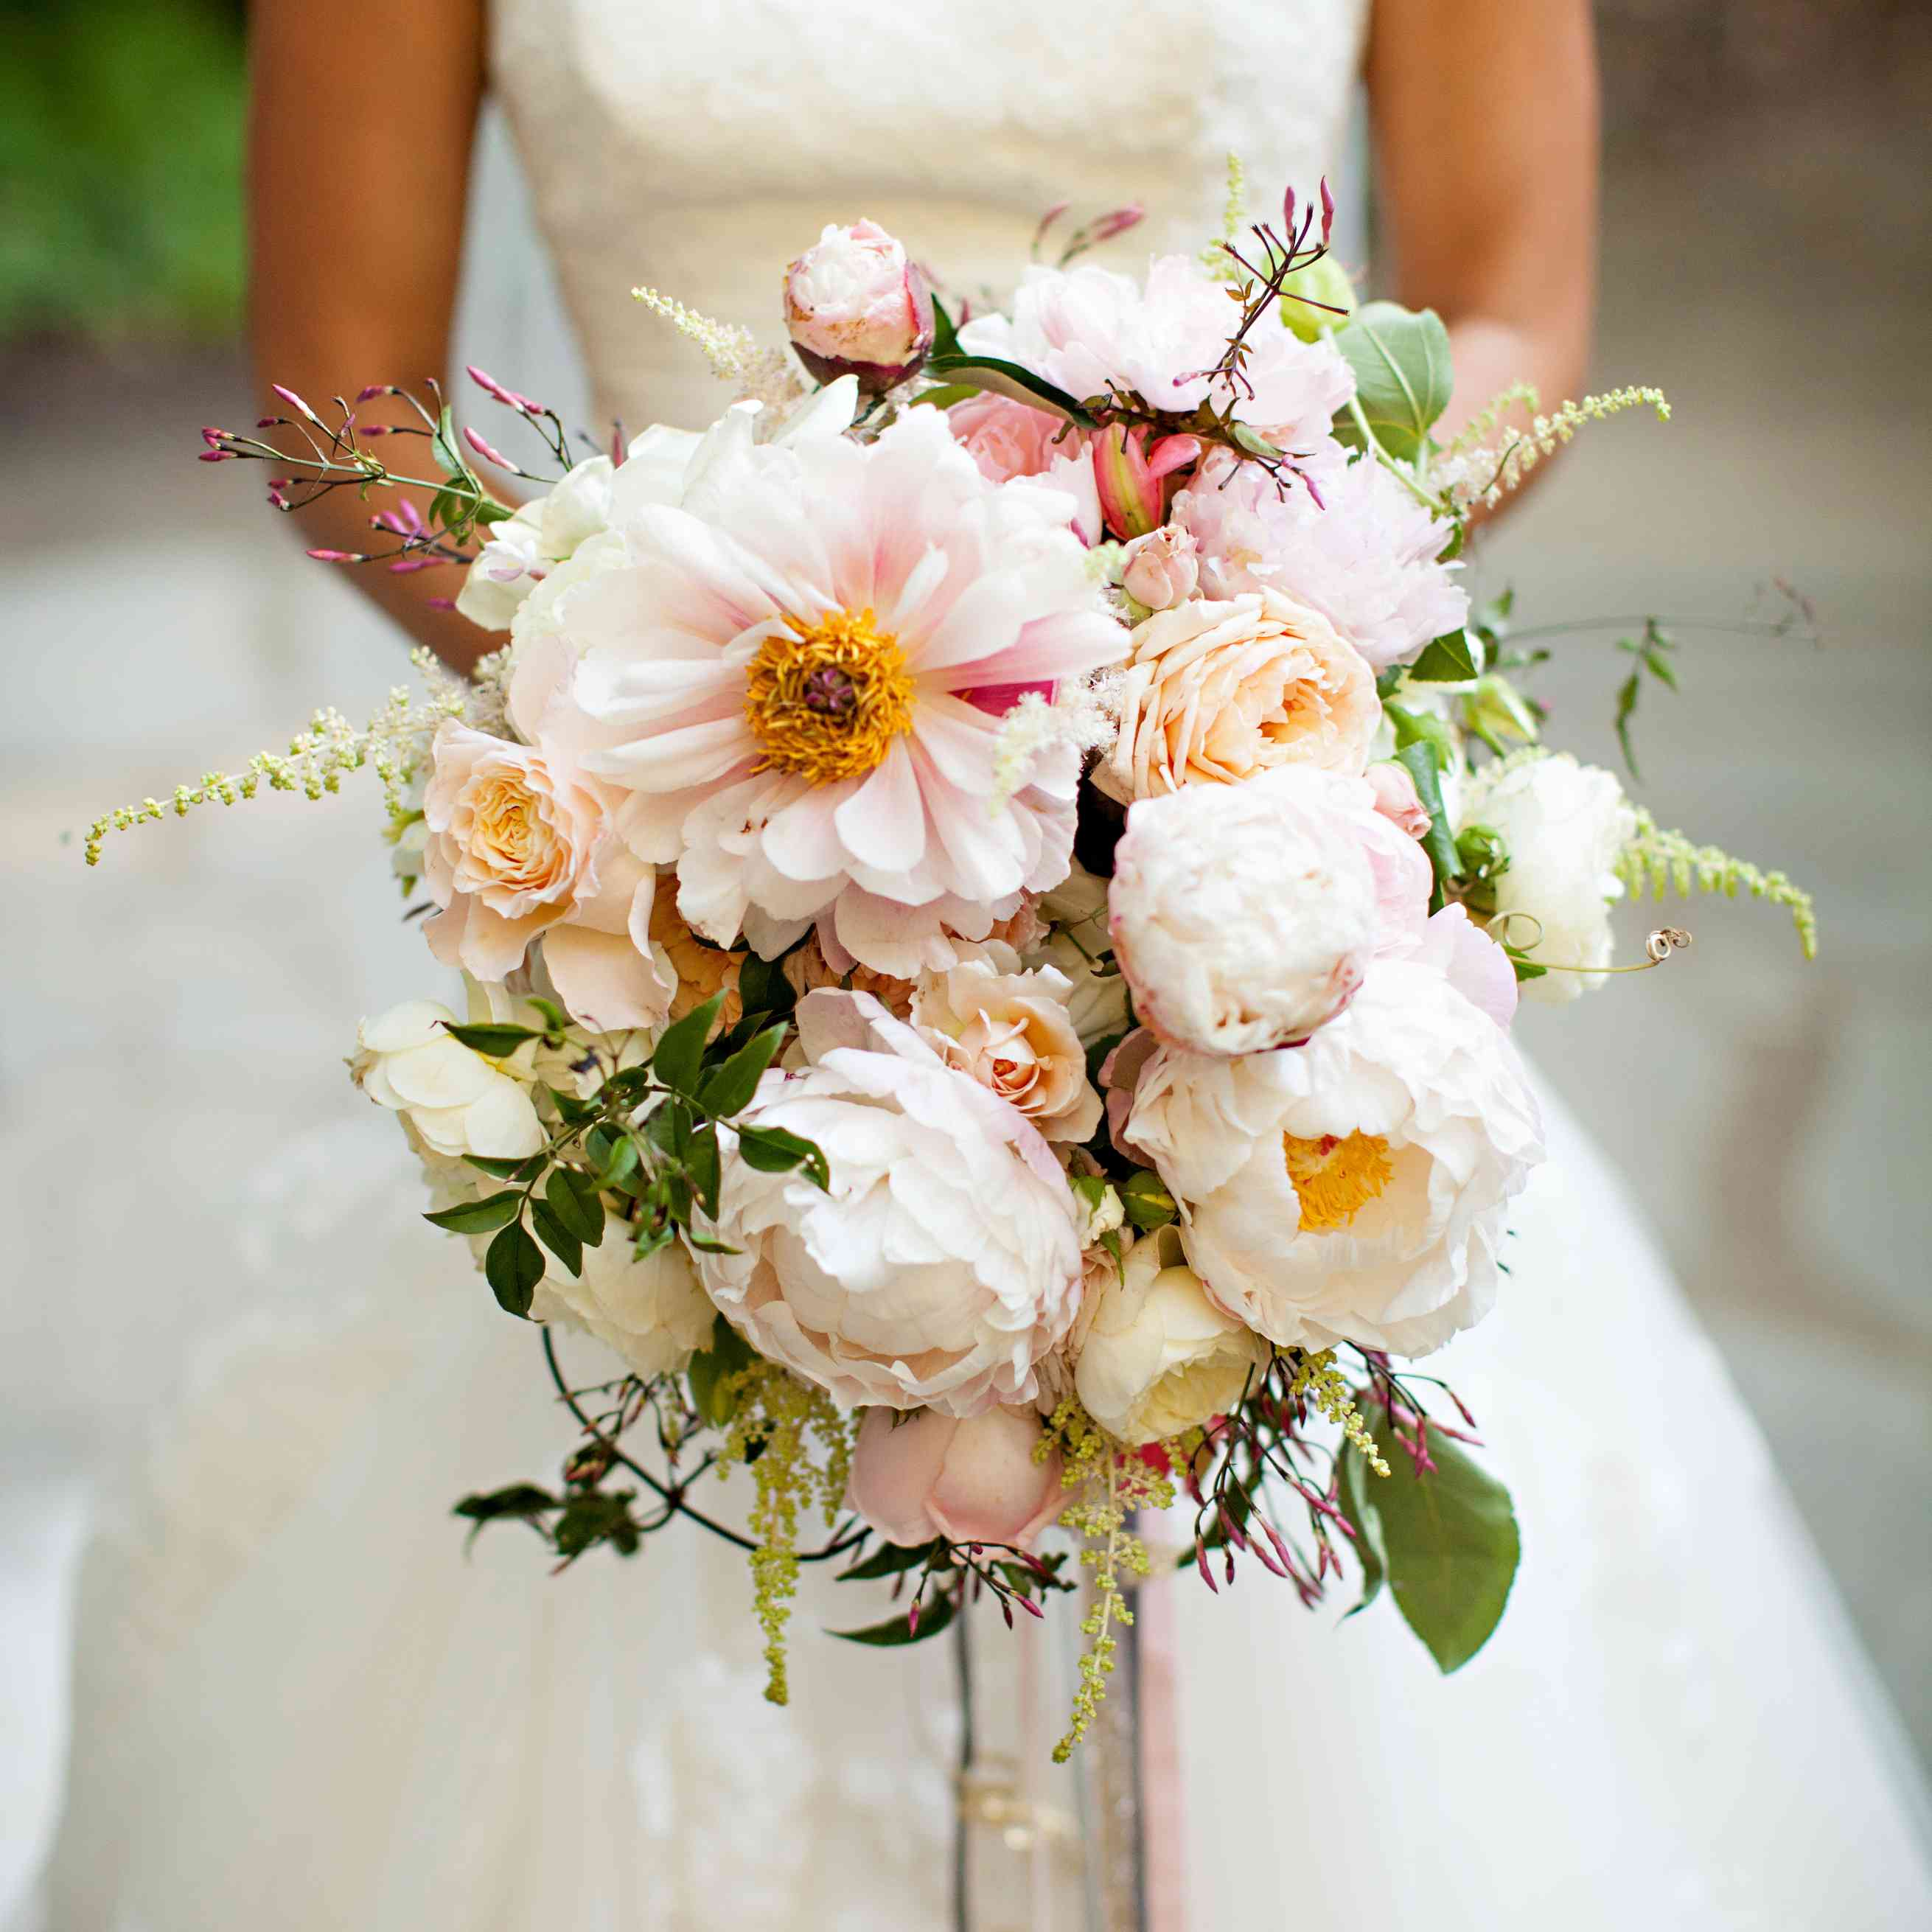 Bride holding a bouquet of jasmine, peonies, garden roses, and astilbe